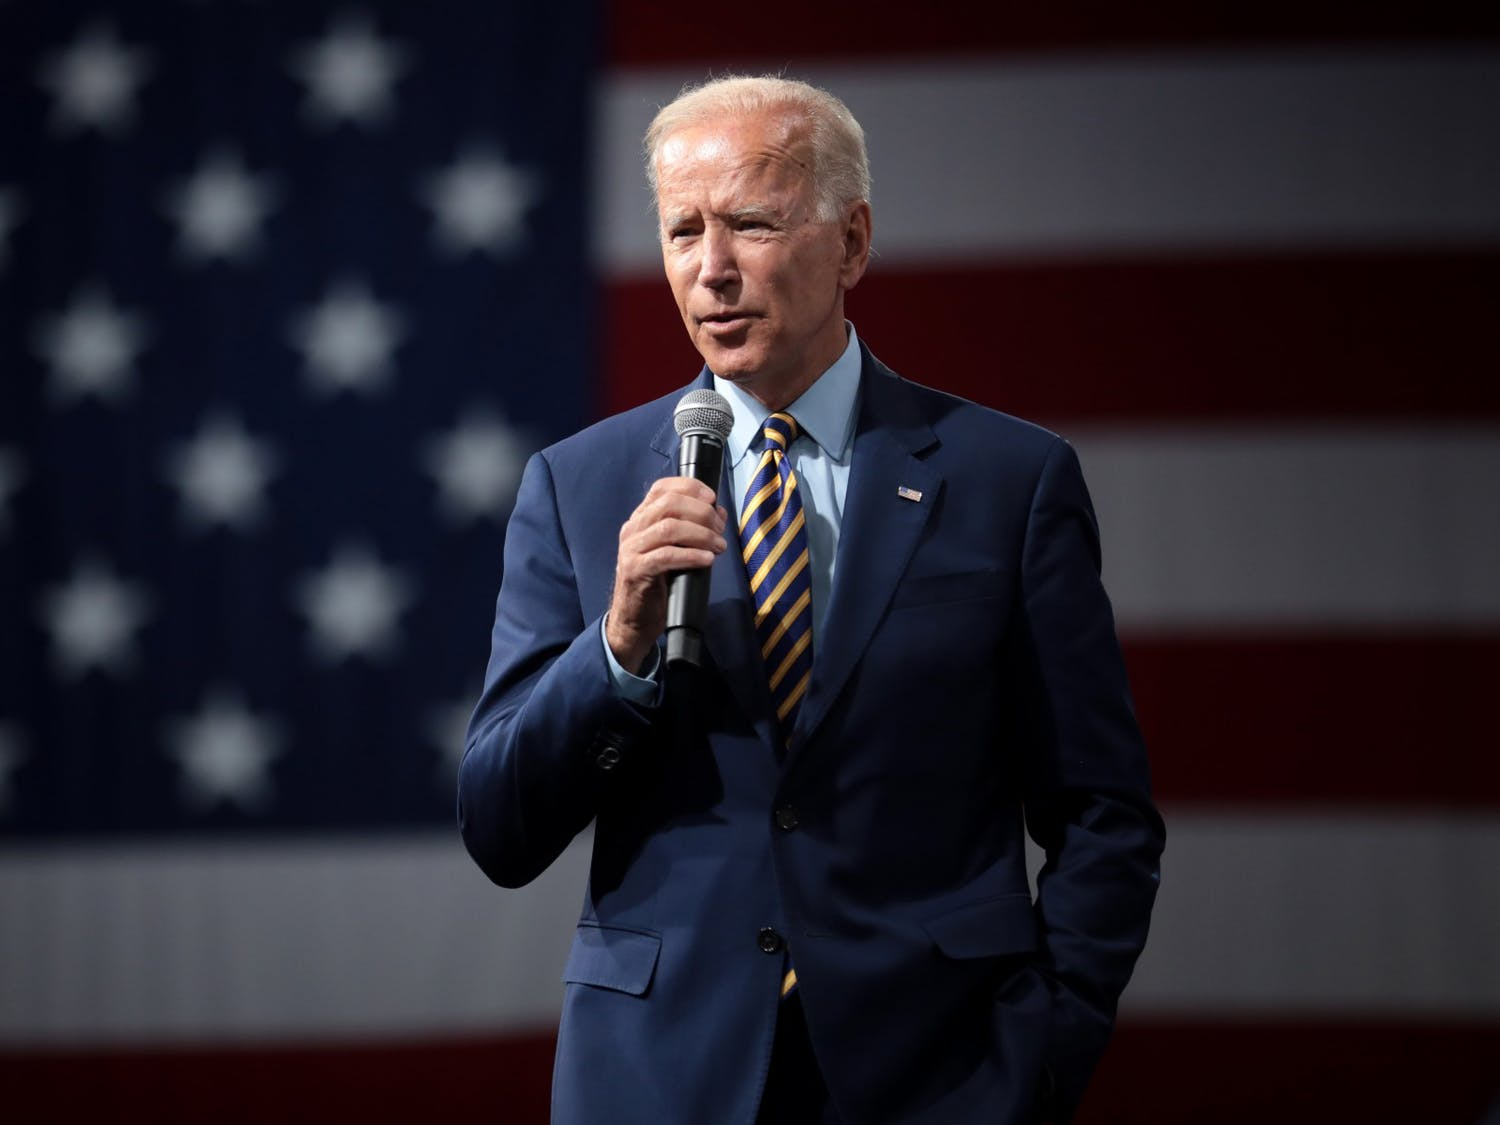 Democratic nominee Joe Biden traveled to Wisconsin for the second time to campaign in an area of the state that largely voted Republican in 2016.